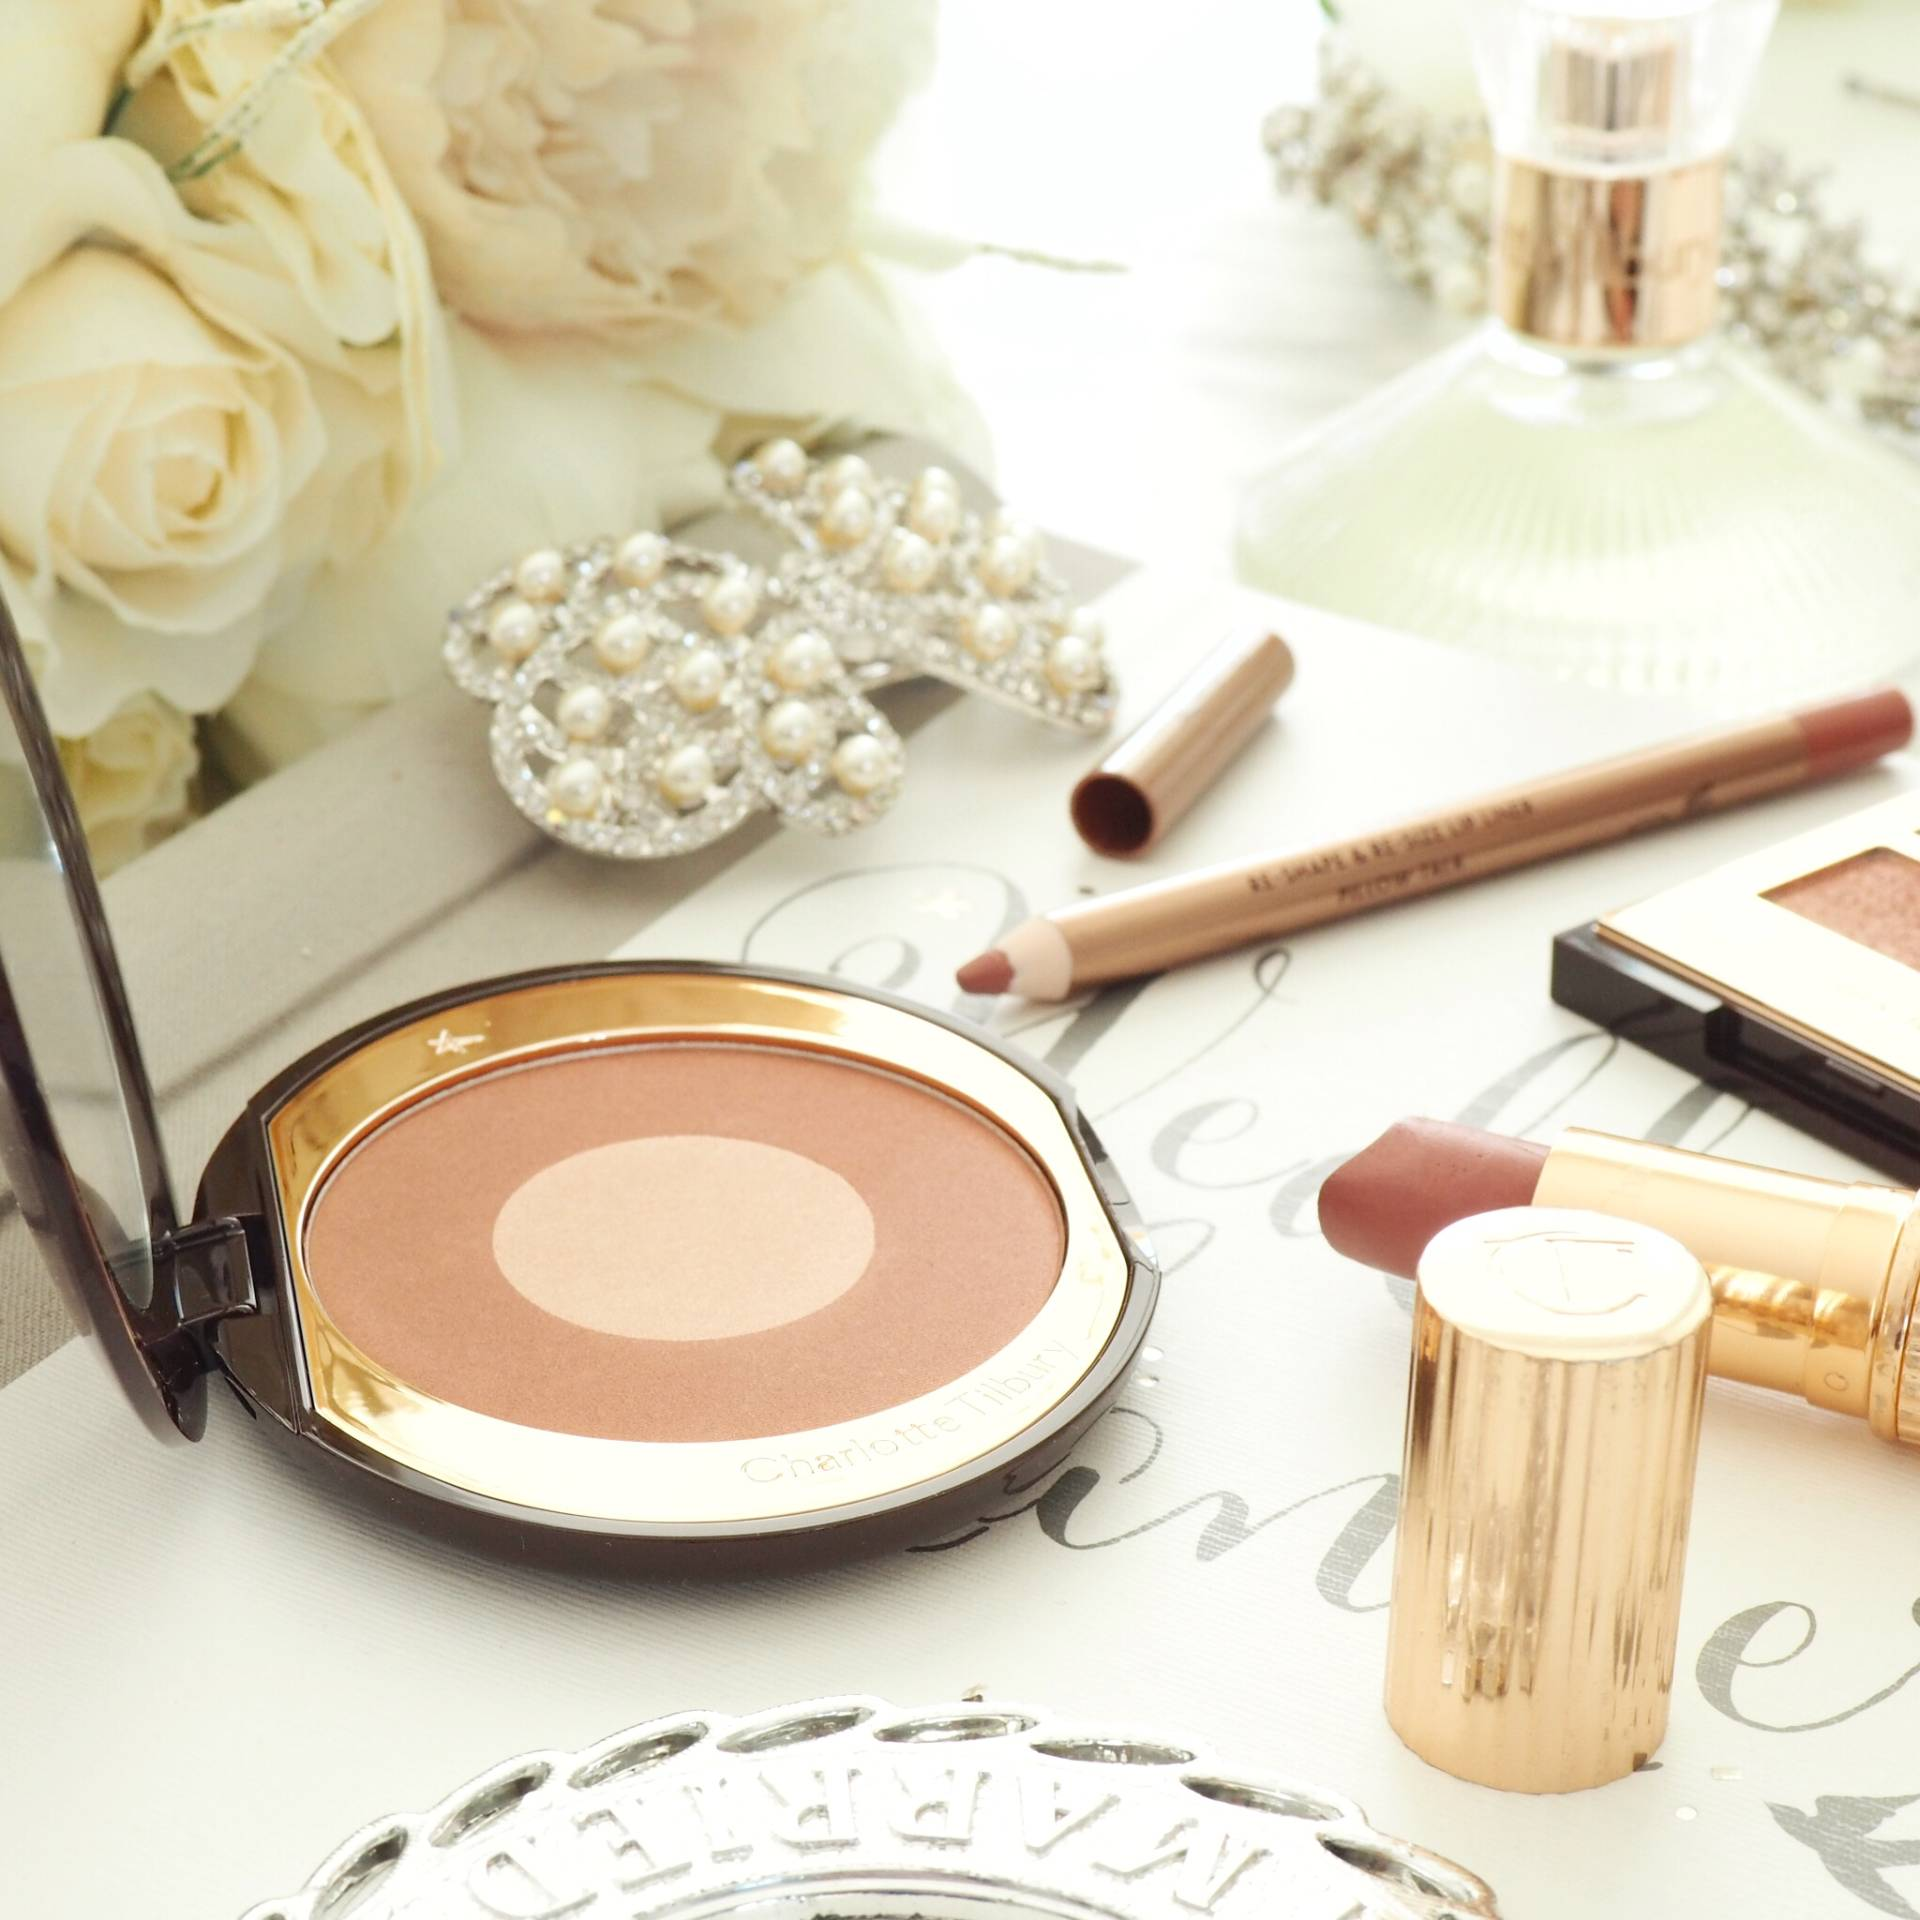 Charlotte-Tilbury-Pillow-Talk-Blusher